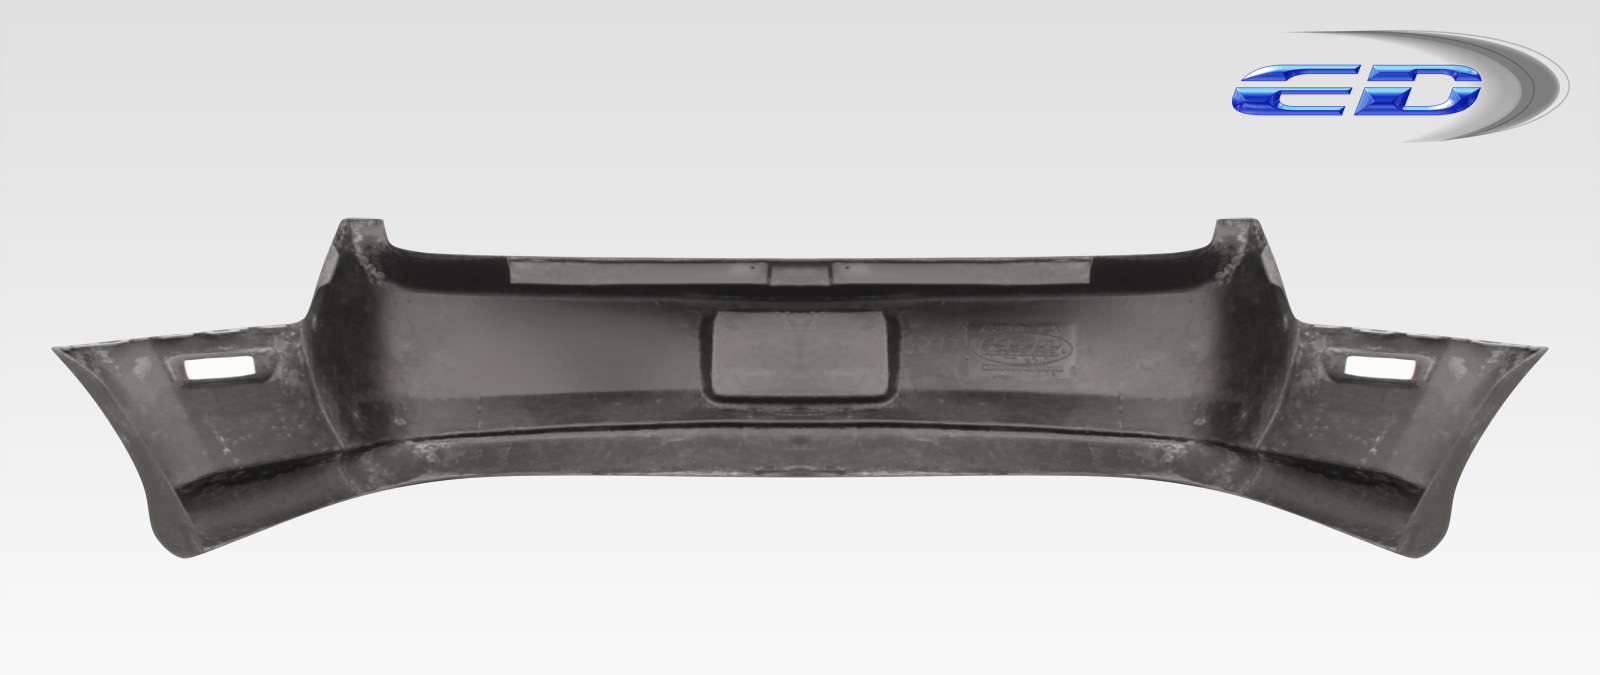 2005-2009 Ford Mustang Polyurethane Eleanor Rear Bumper Cover (Deletes Exhaust Ports) - 1 Piece